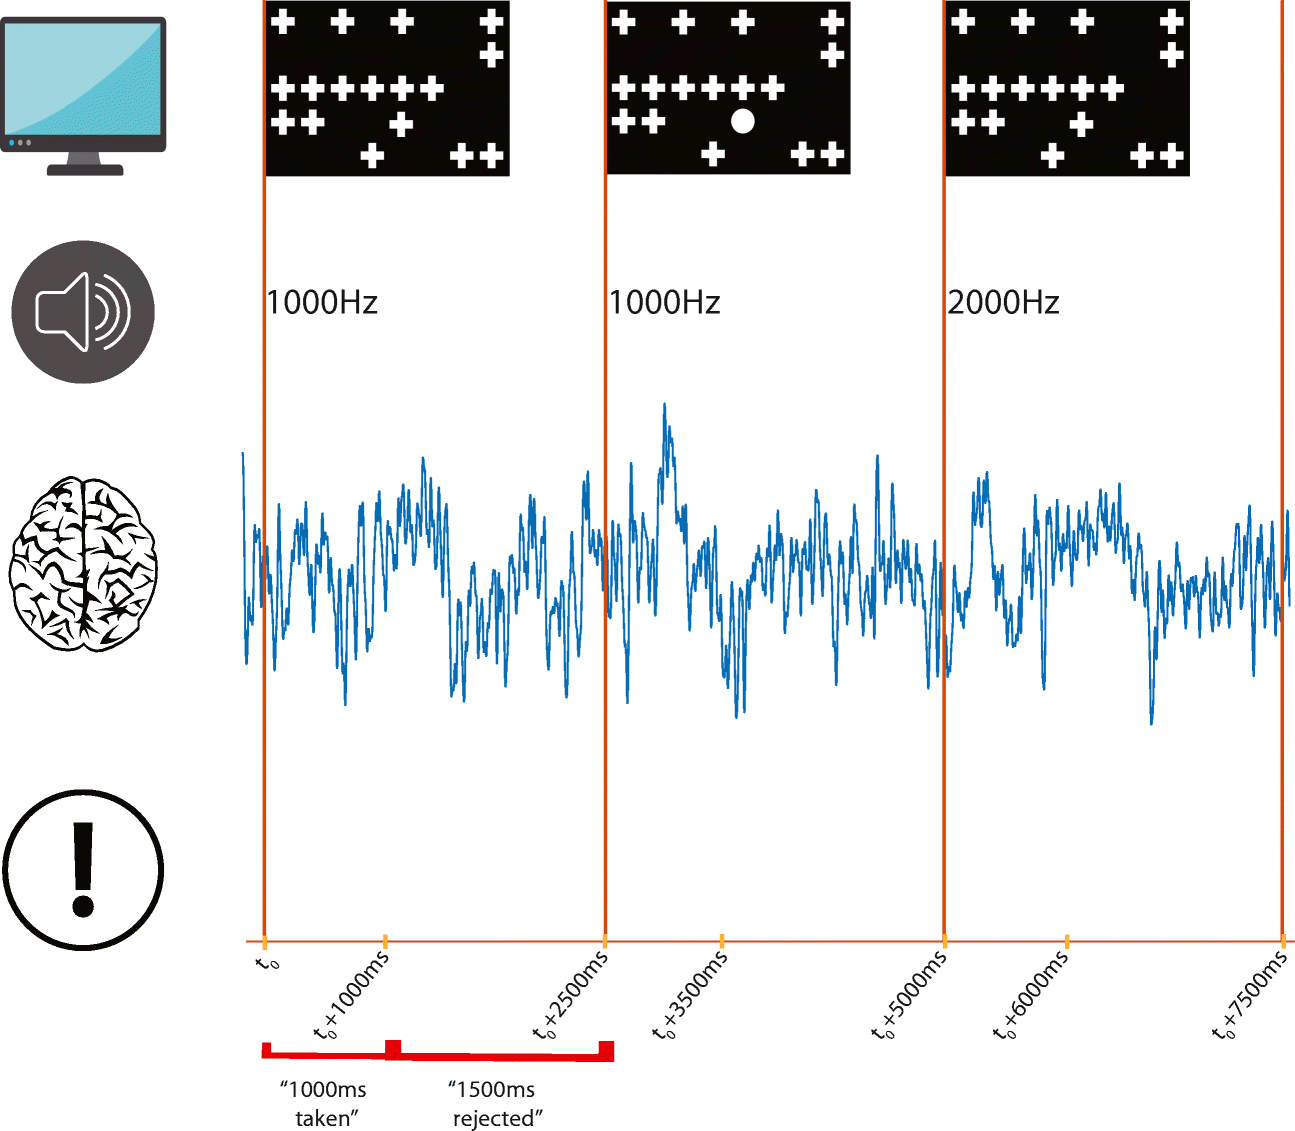 Evaluation of divided attention using different stimulation